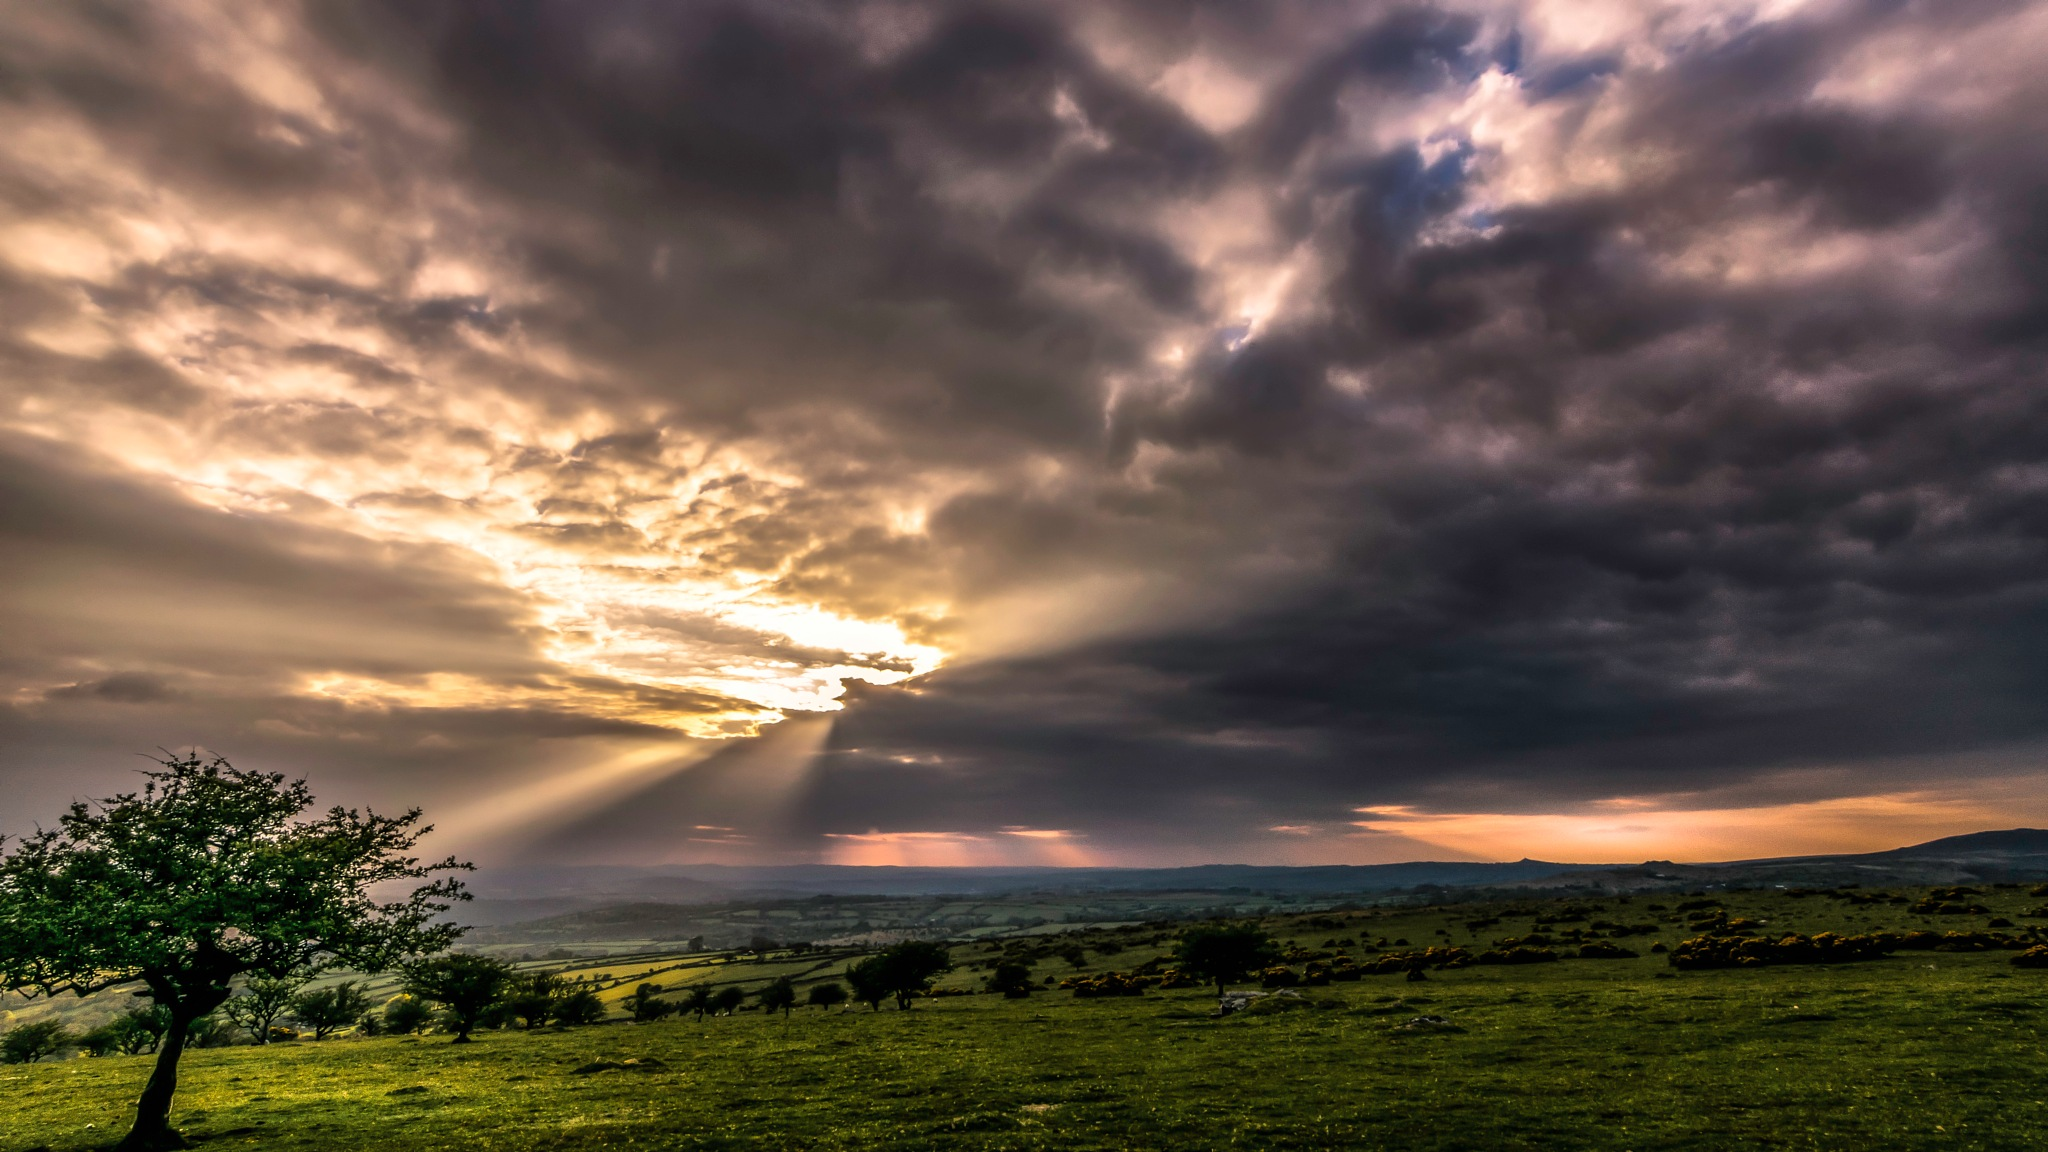 hawthorn rays by phillip ticehurst